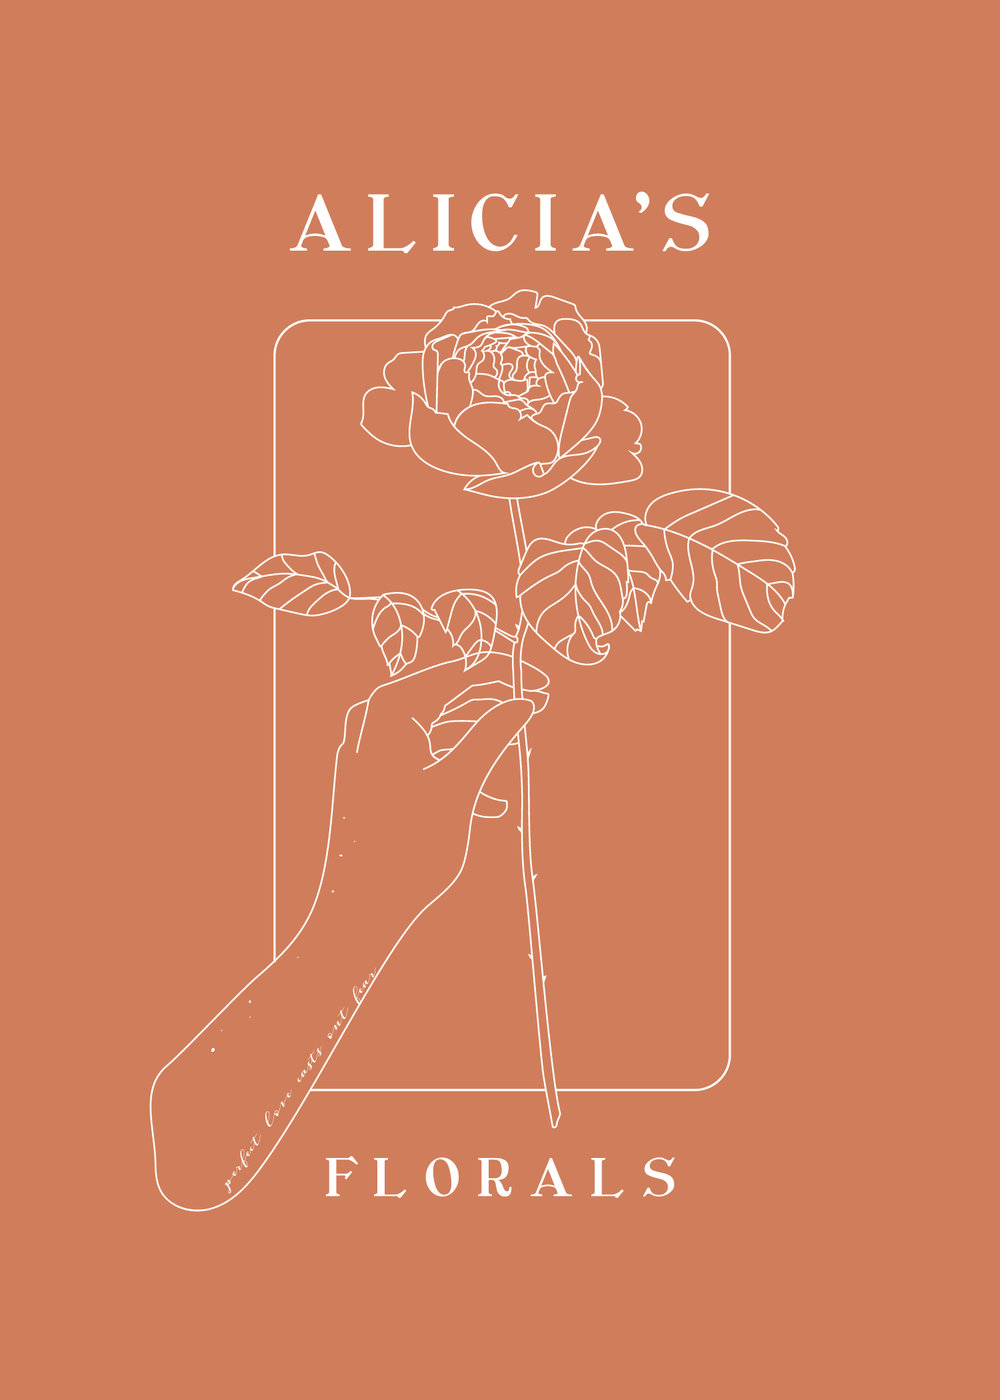 ALICIA'S_FLORALS-Logo_Package-Aug2018_ALT-colour.jpg